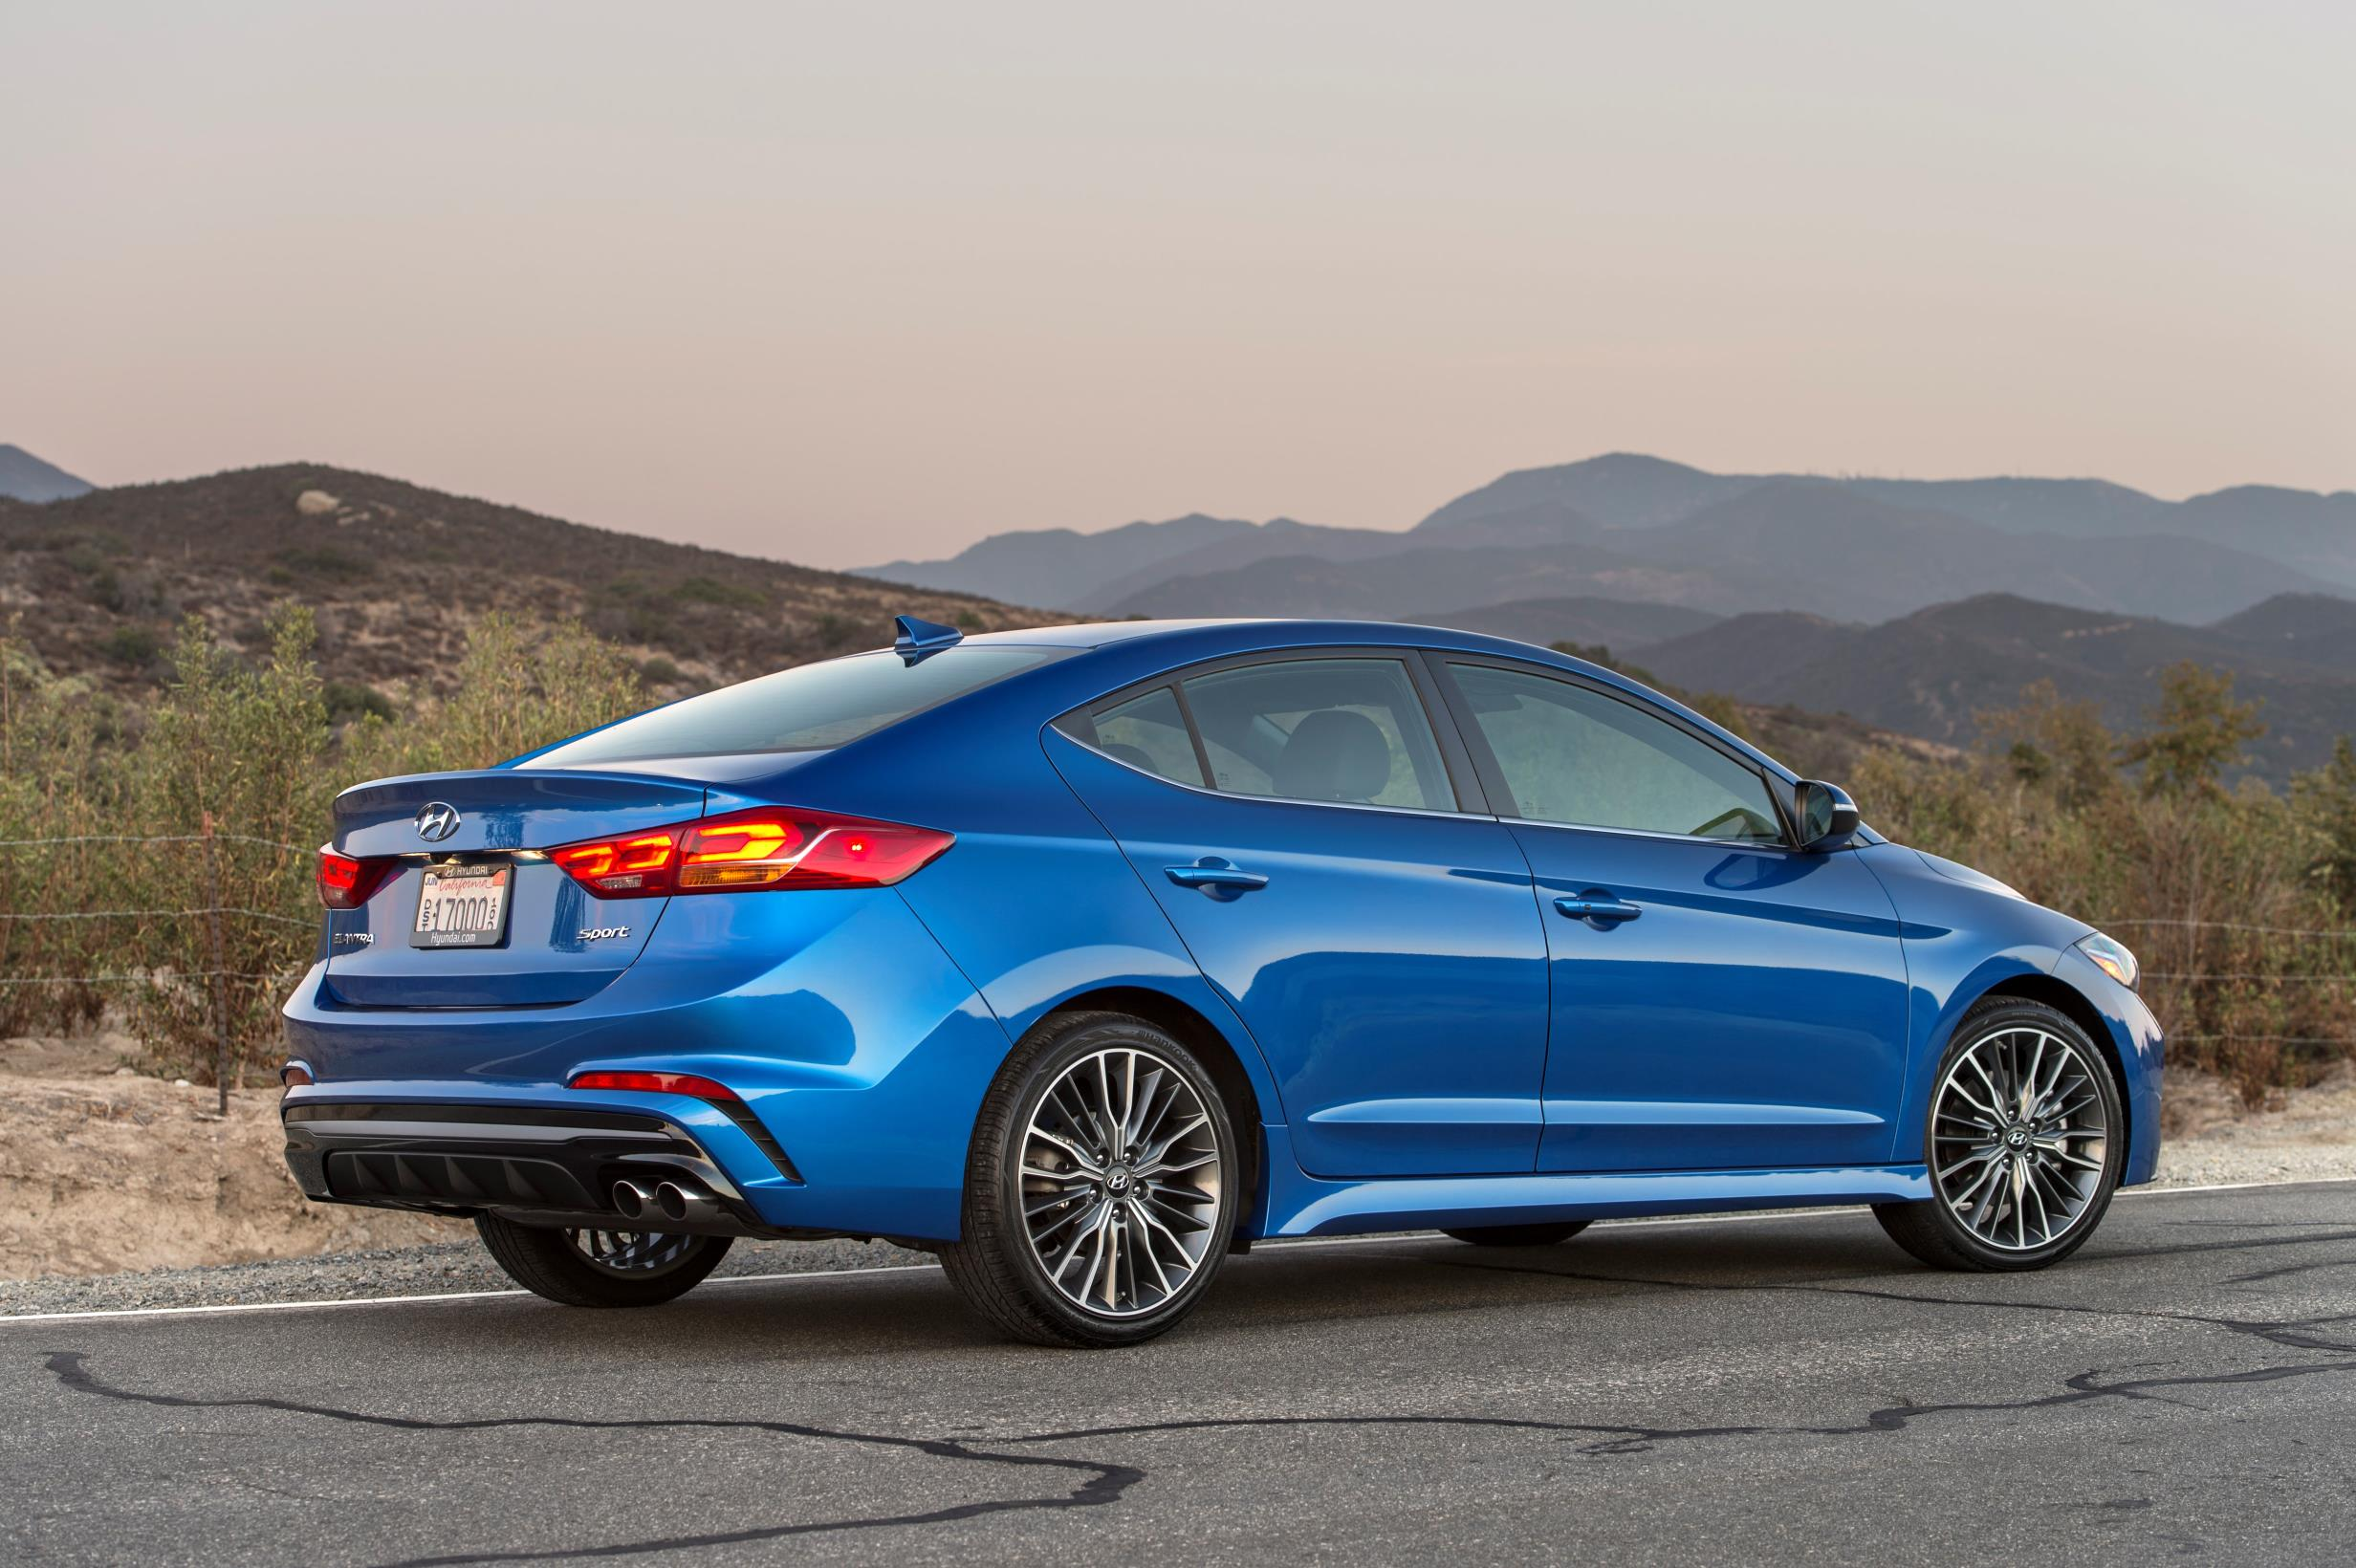 2017 Hyundai Elantra Sport Boasts Irs Turbo Engine